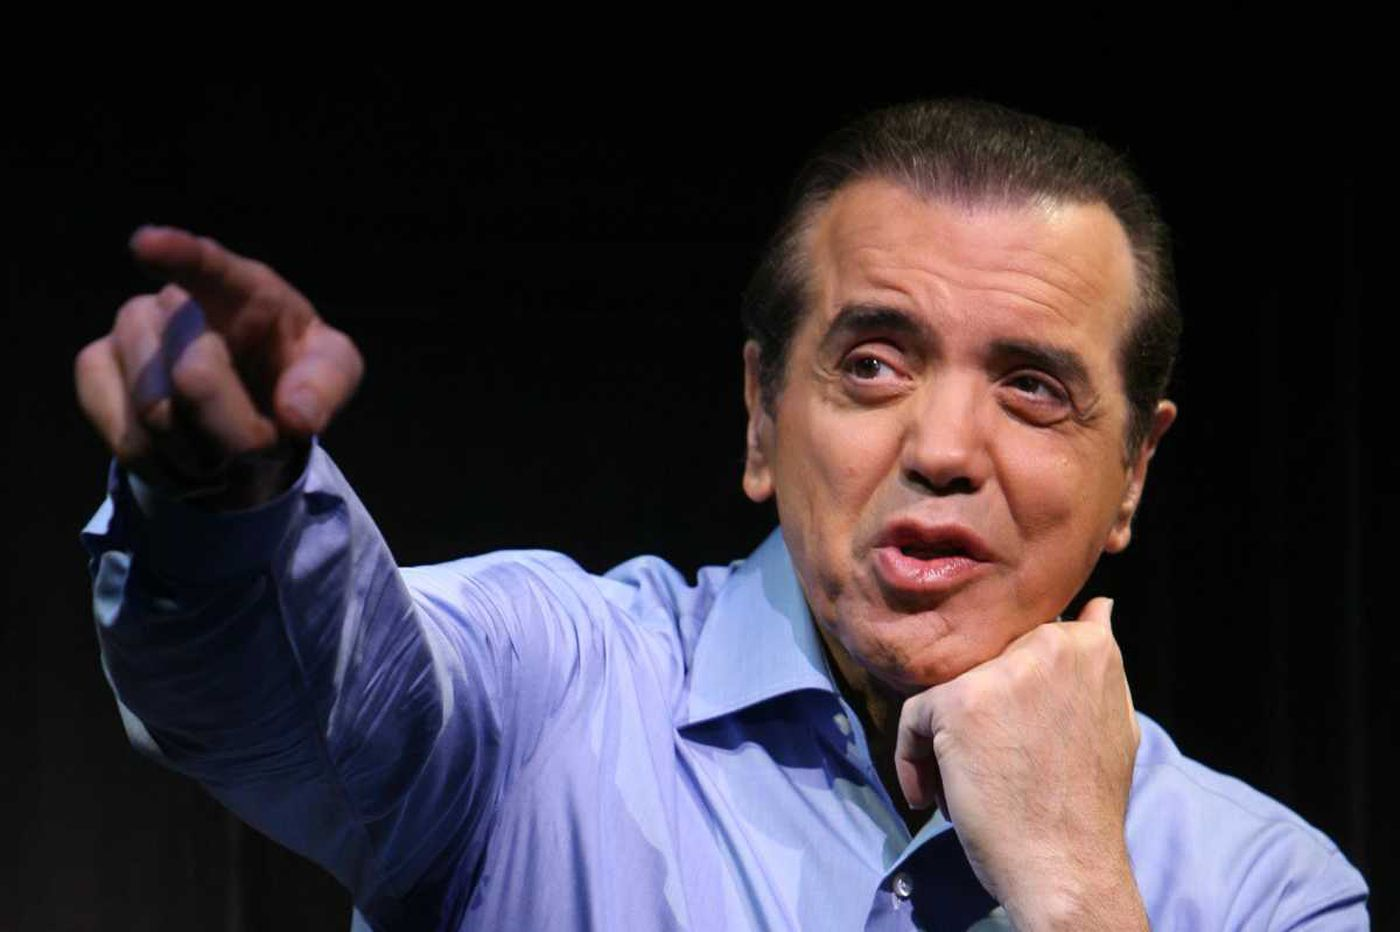 Q&A: Chazz Palminteri and 'A Bronx Tale' come to Golden Nugget